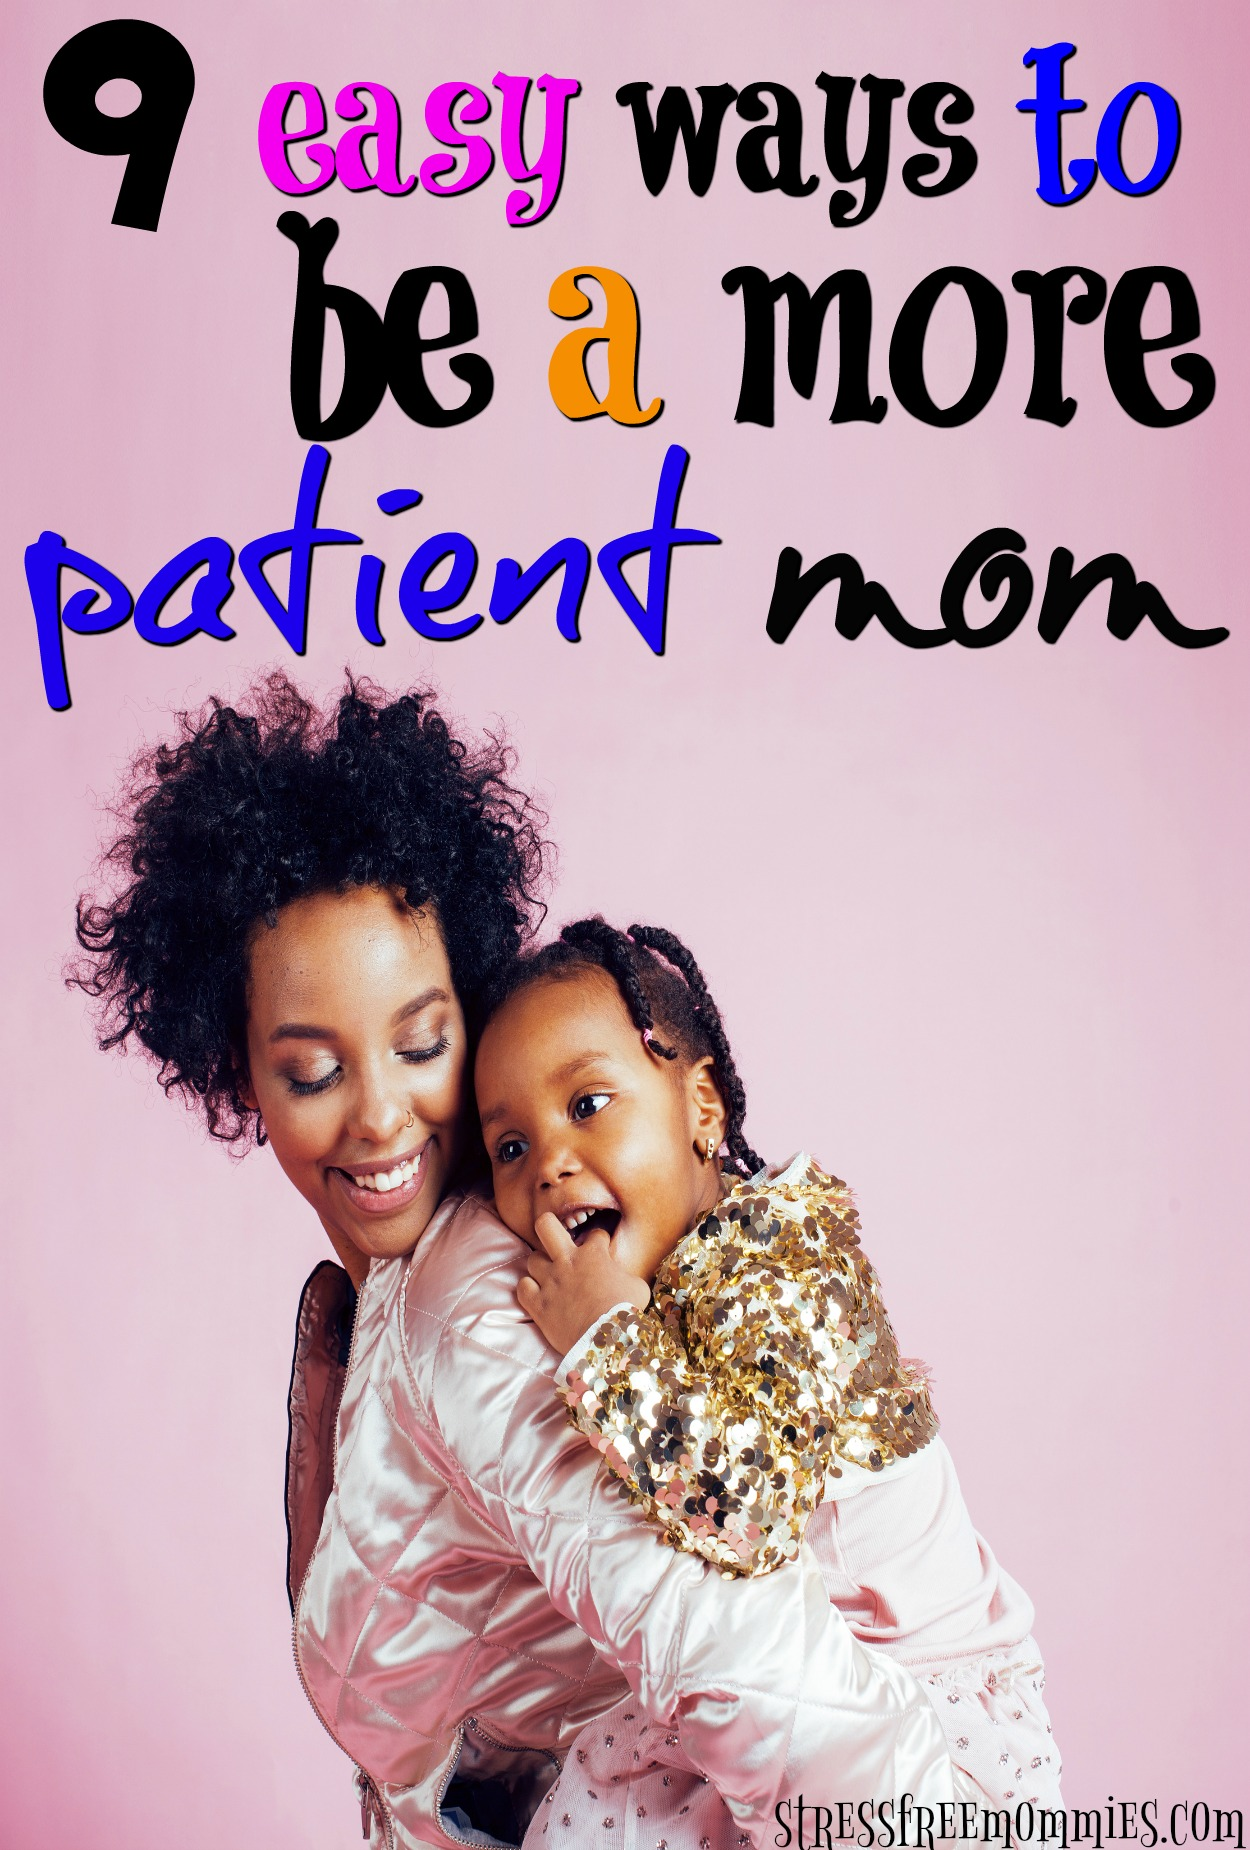 9 easy ways to be a more patient mom